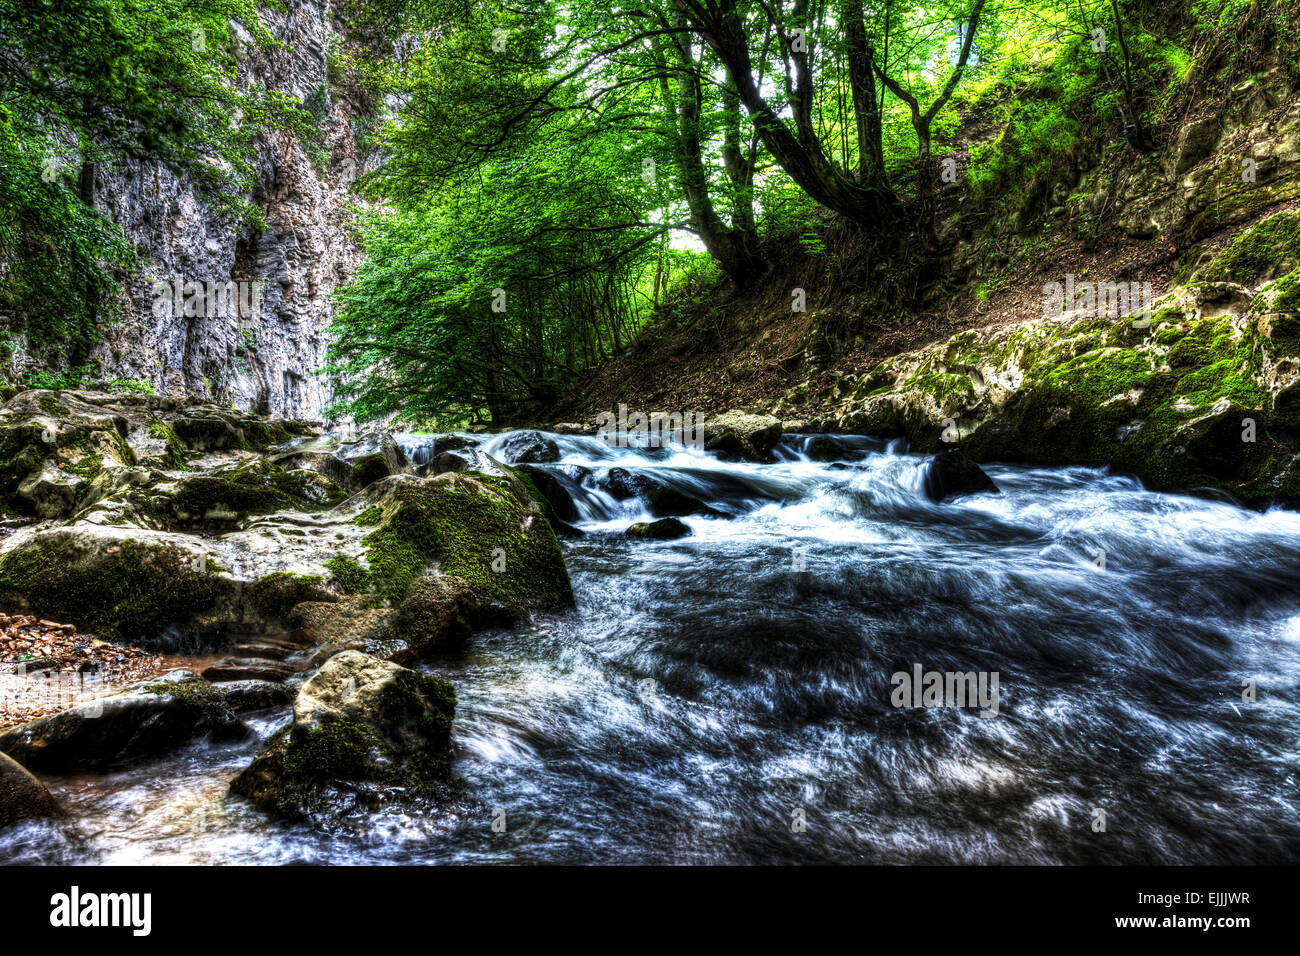 Water flowing in river bed, Bigar Waterfall, Romania. Stock Photo